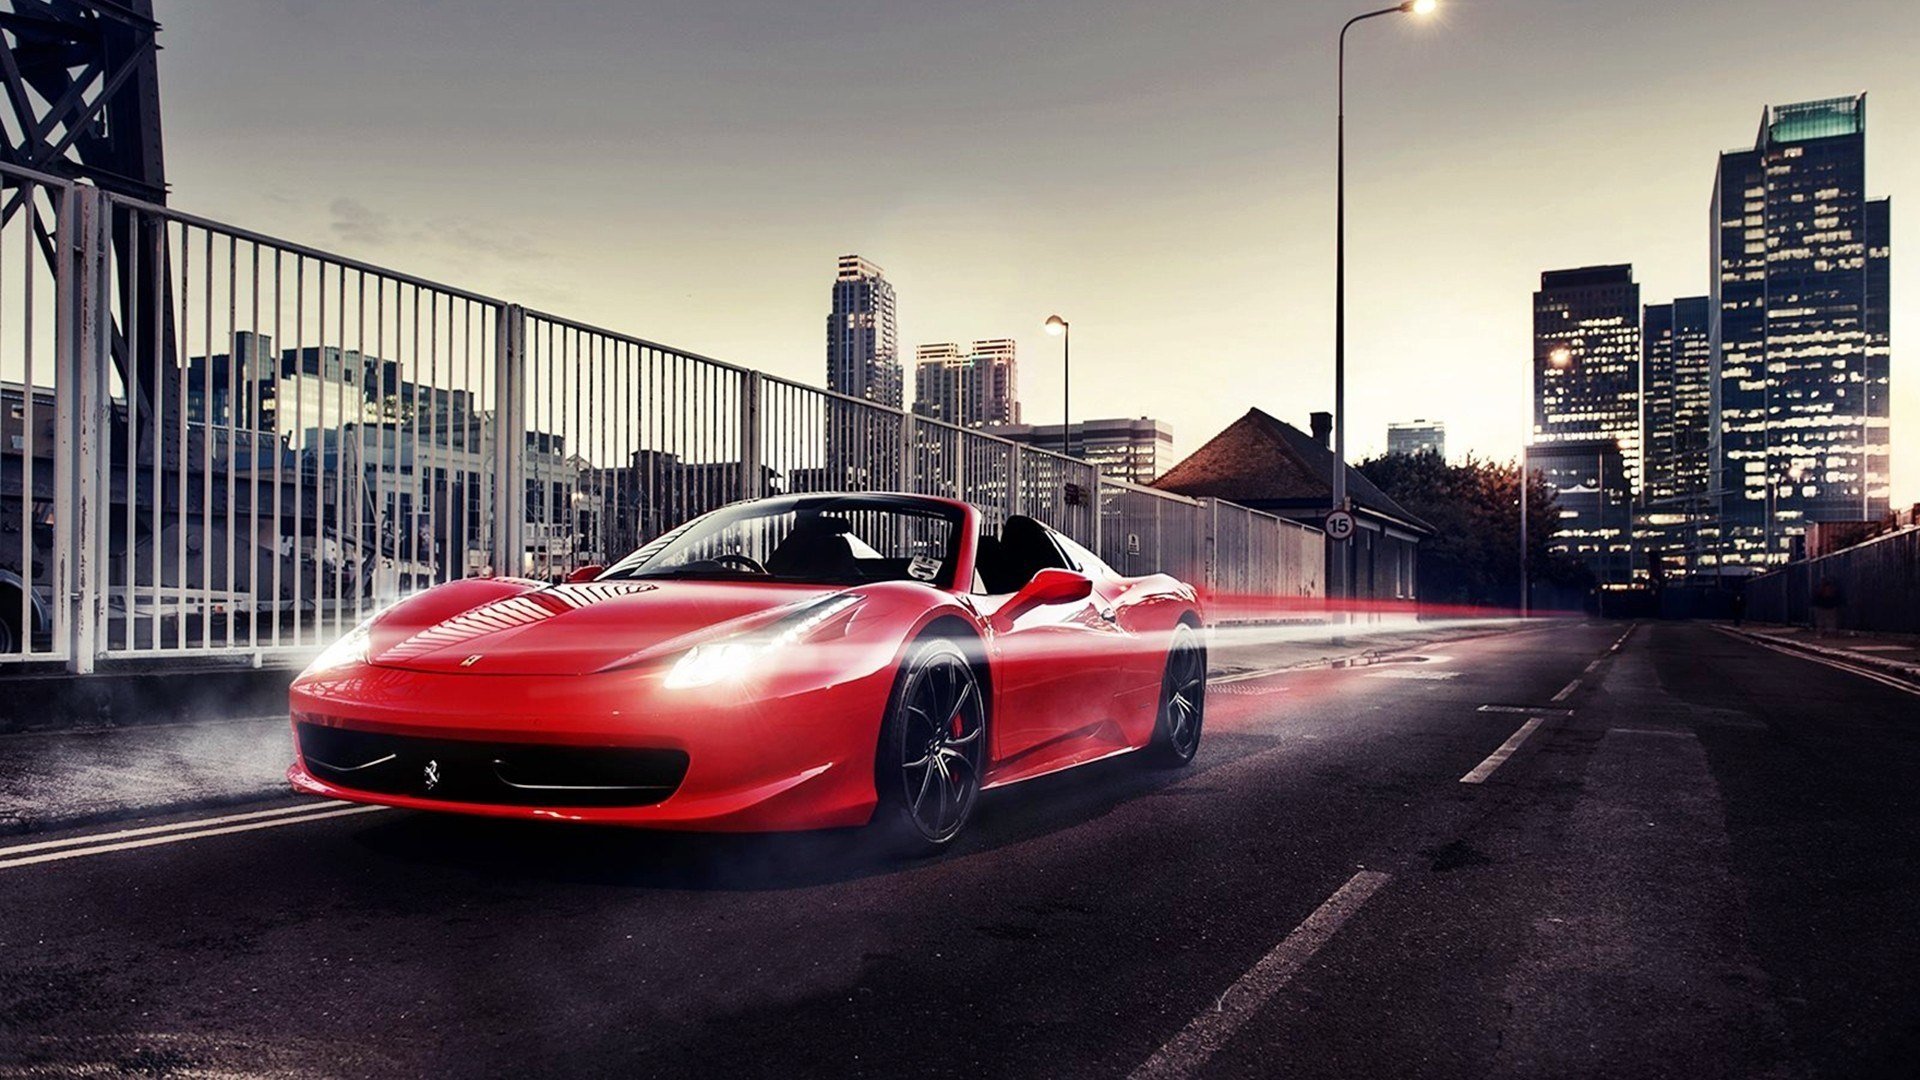 "Download the following Fantastic Ferrari 458 Wallpaper 37621 by clicking the orange button positioned underneath the ""Download Wallpaper"" section."